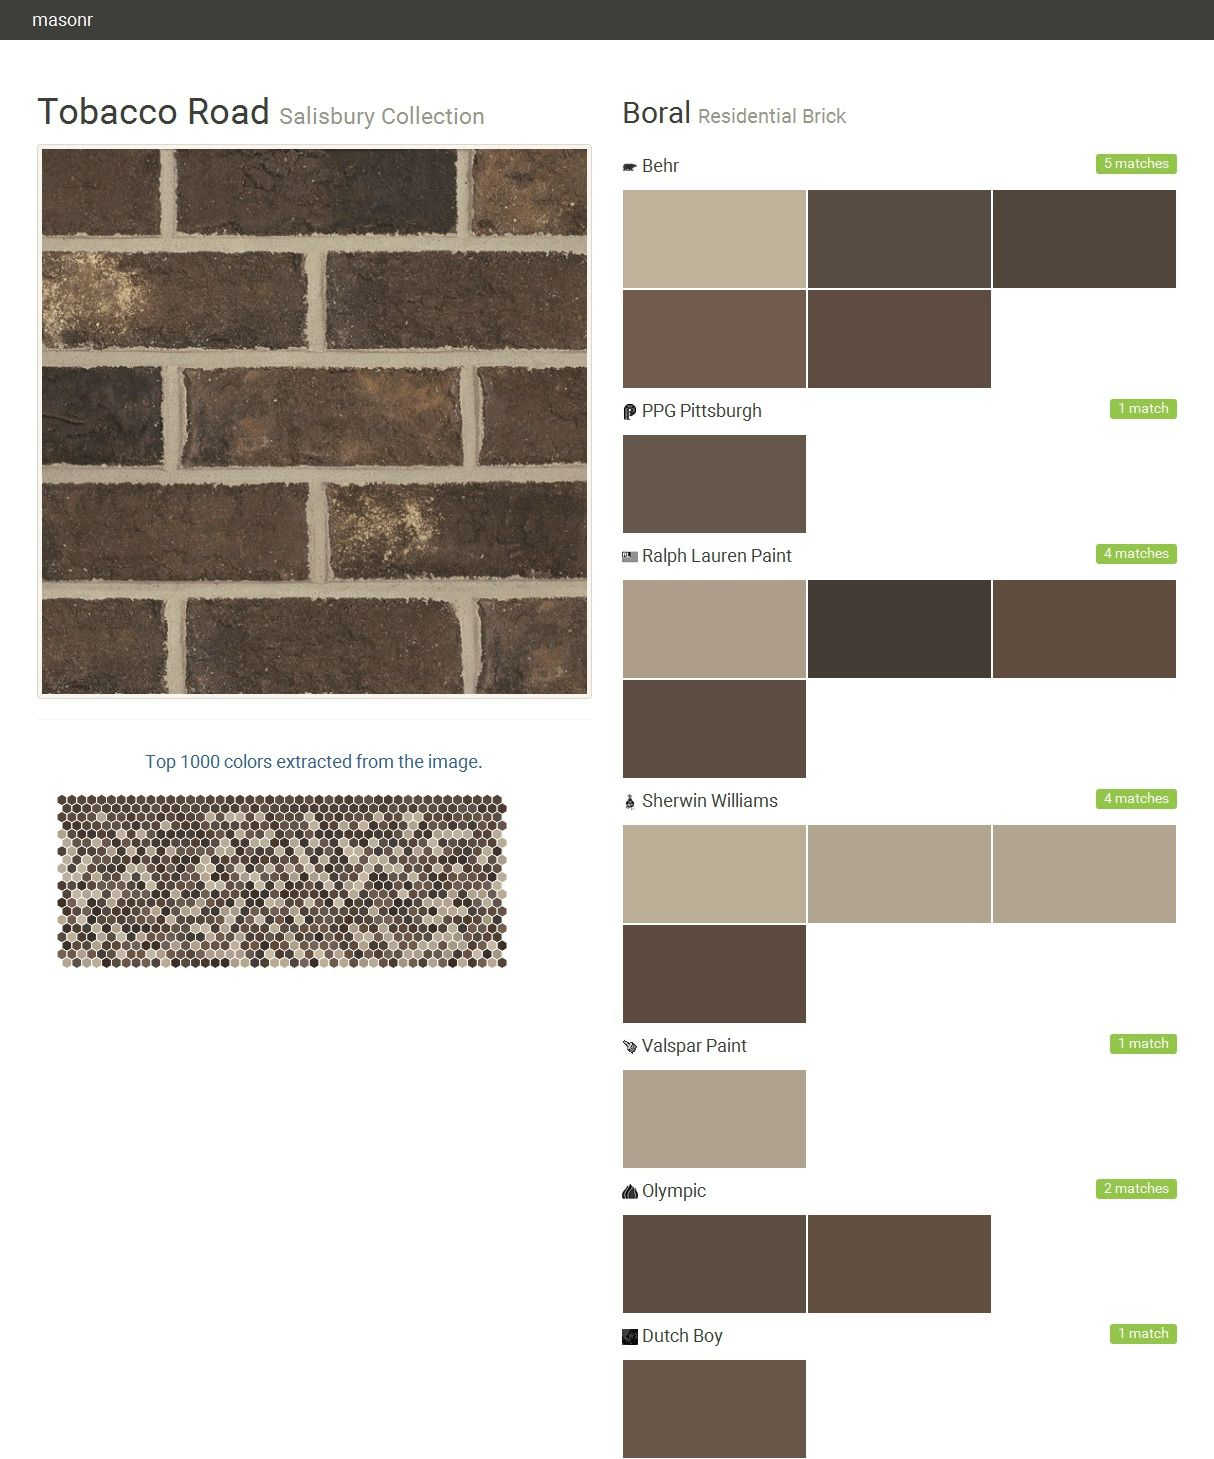 tobacco road salisbury collection residential brick boral behr tobacco road salisbury collection residential brick boral behr ppg paints